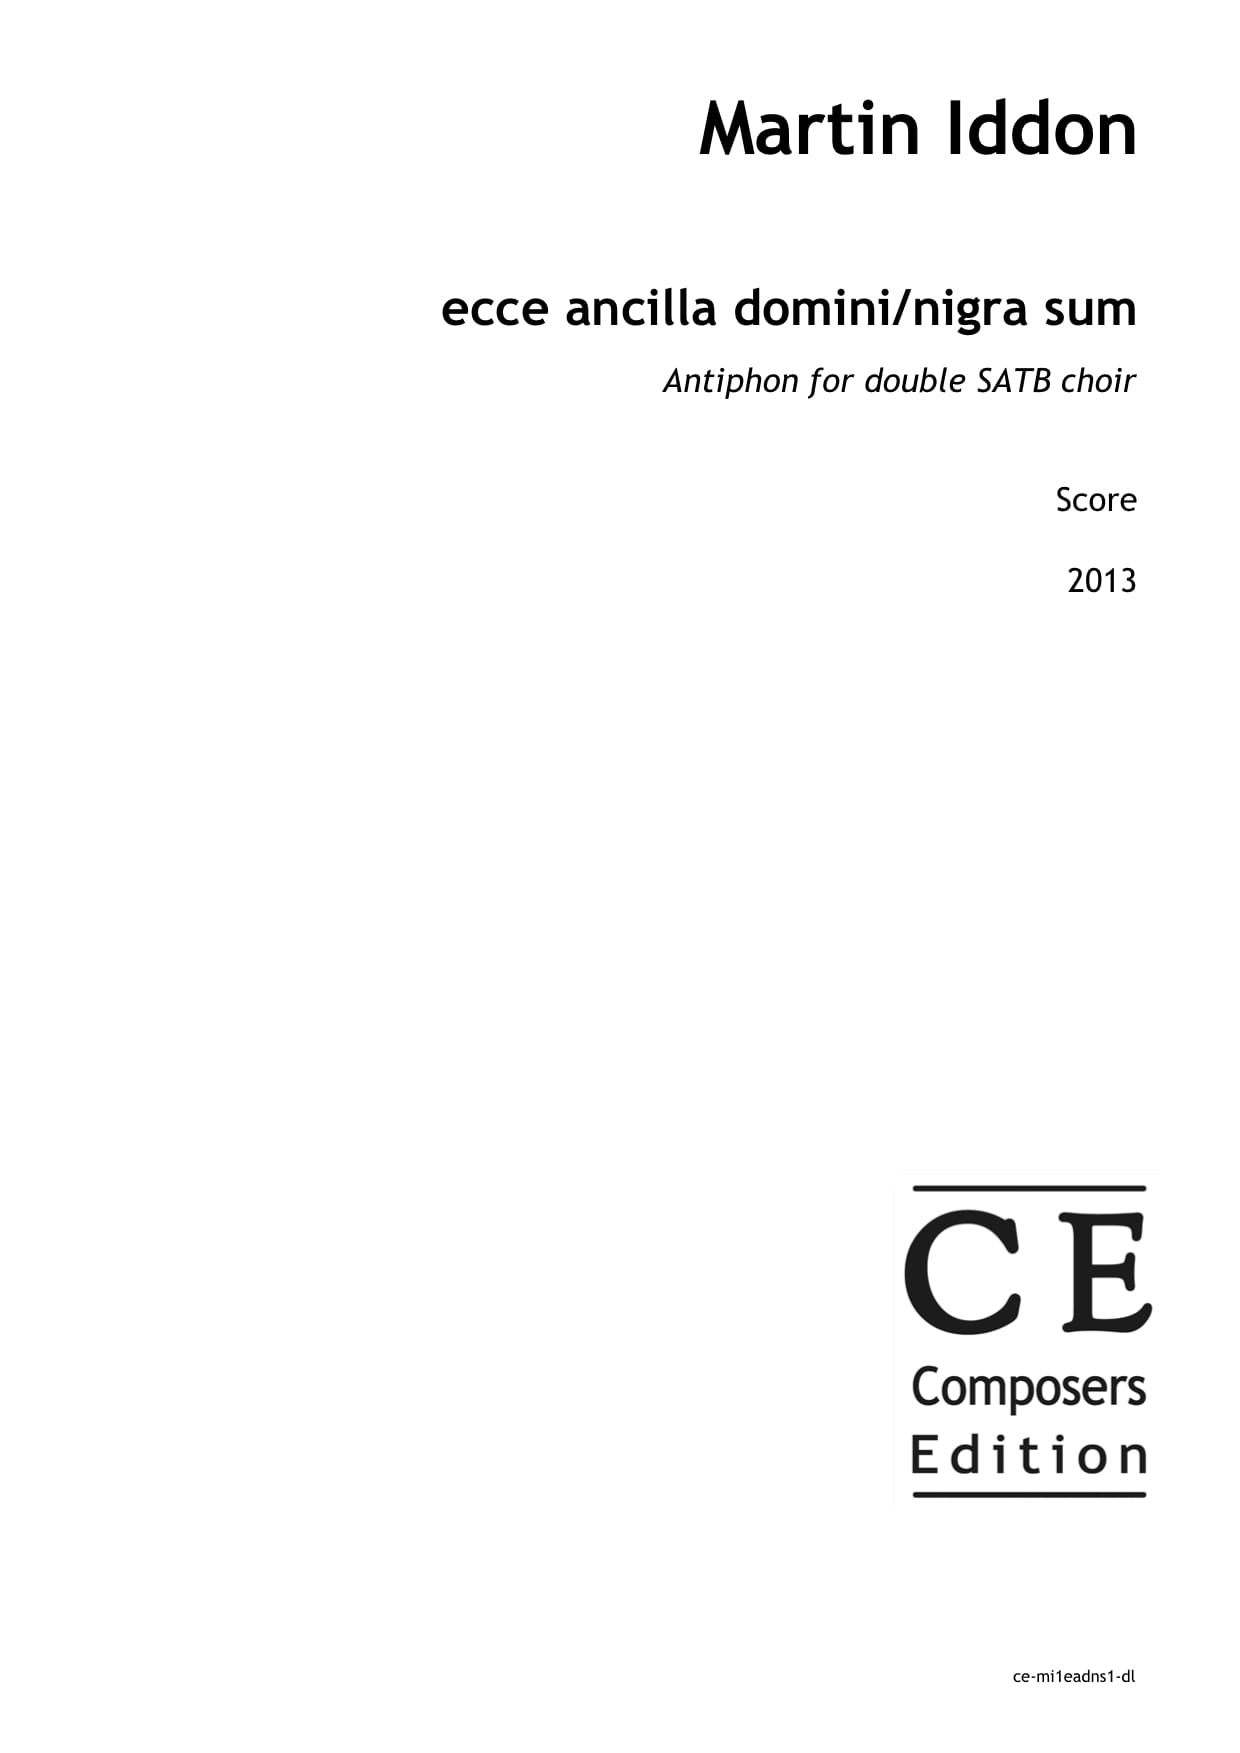 Martin Iddon: ecce ancilla domini/nigra sum Antiphon for double SATB choir